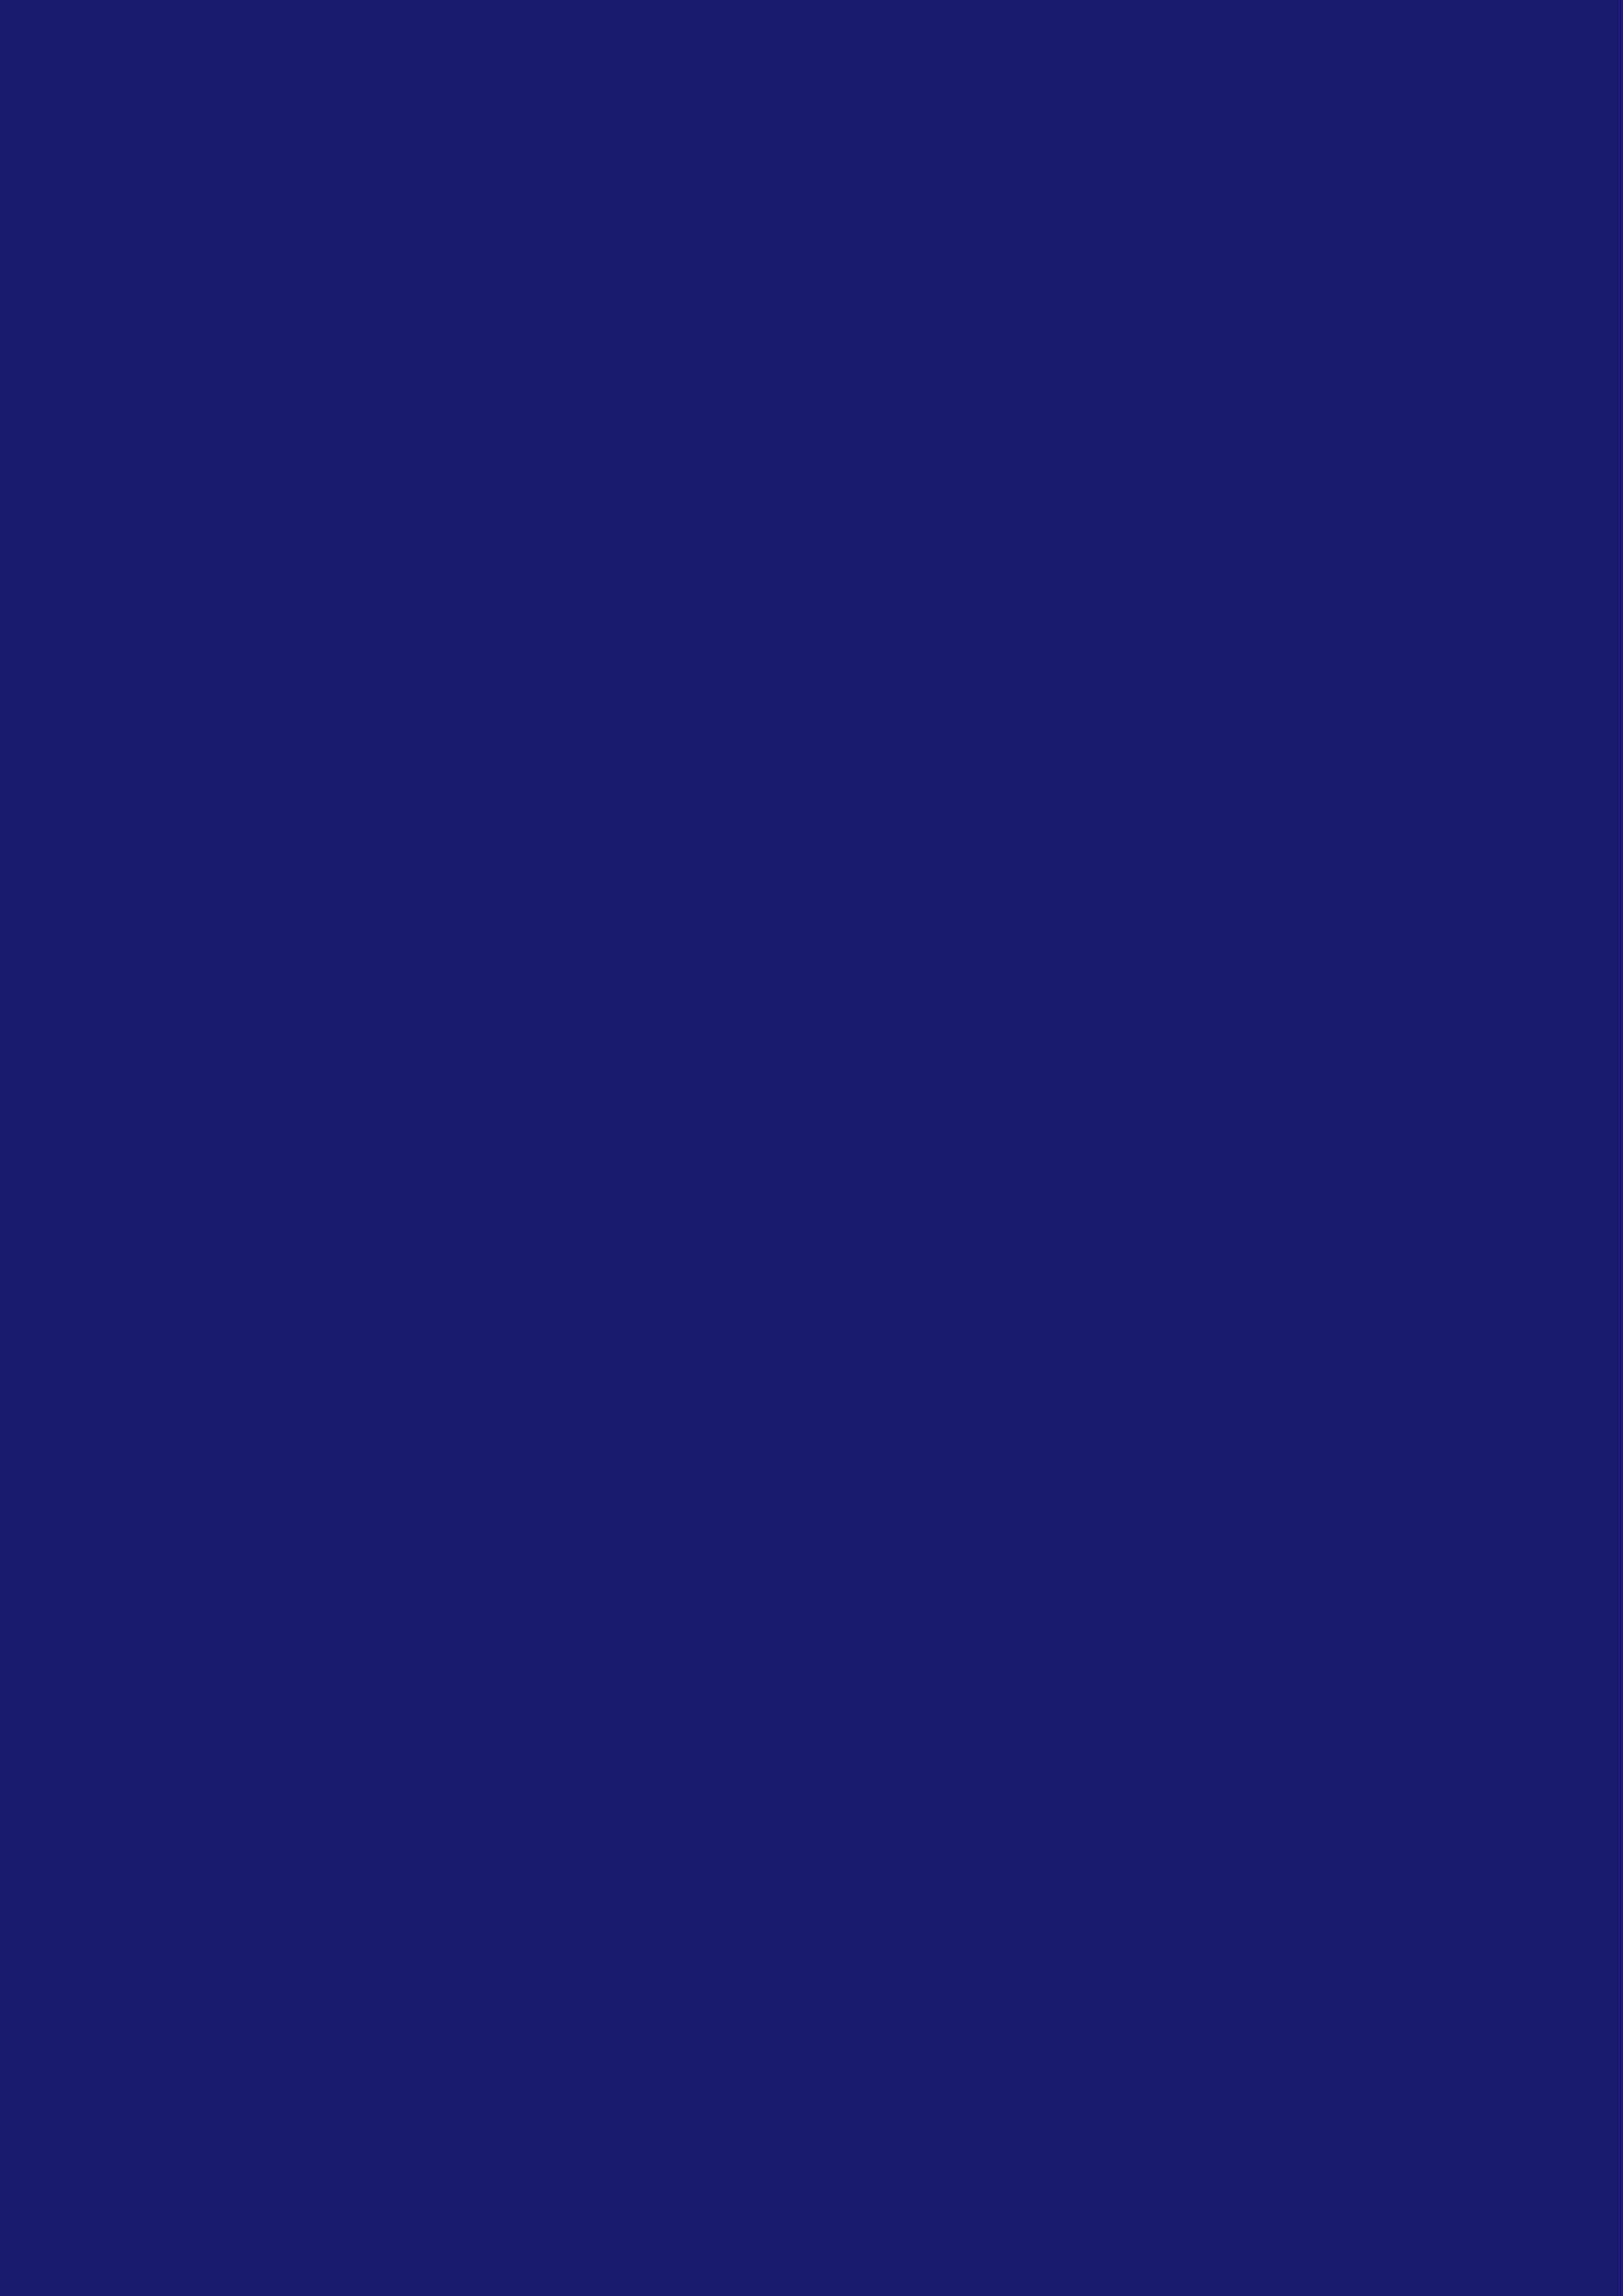 2480x3508 Midnight Blue Solid Color Background